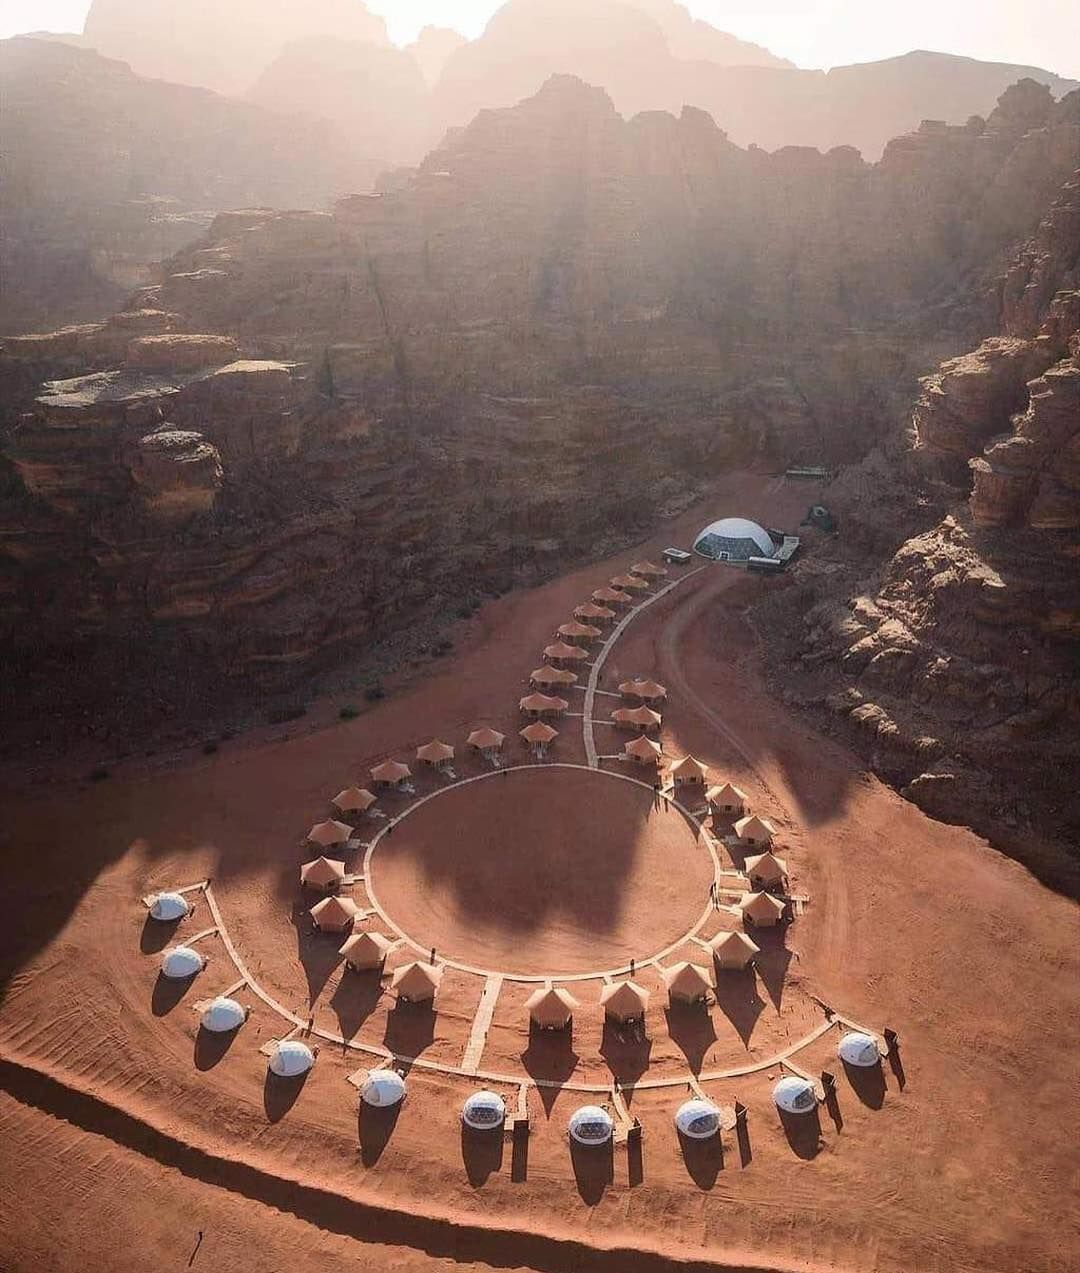 Luxury Camping in Wadi Rum Jordan #wadirum